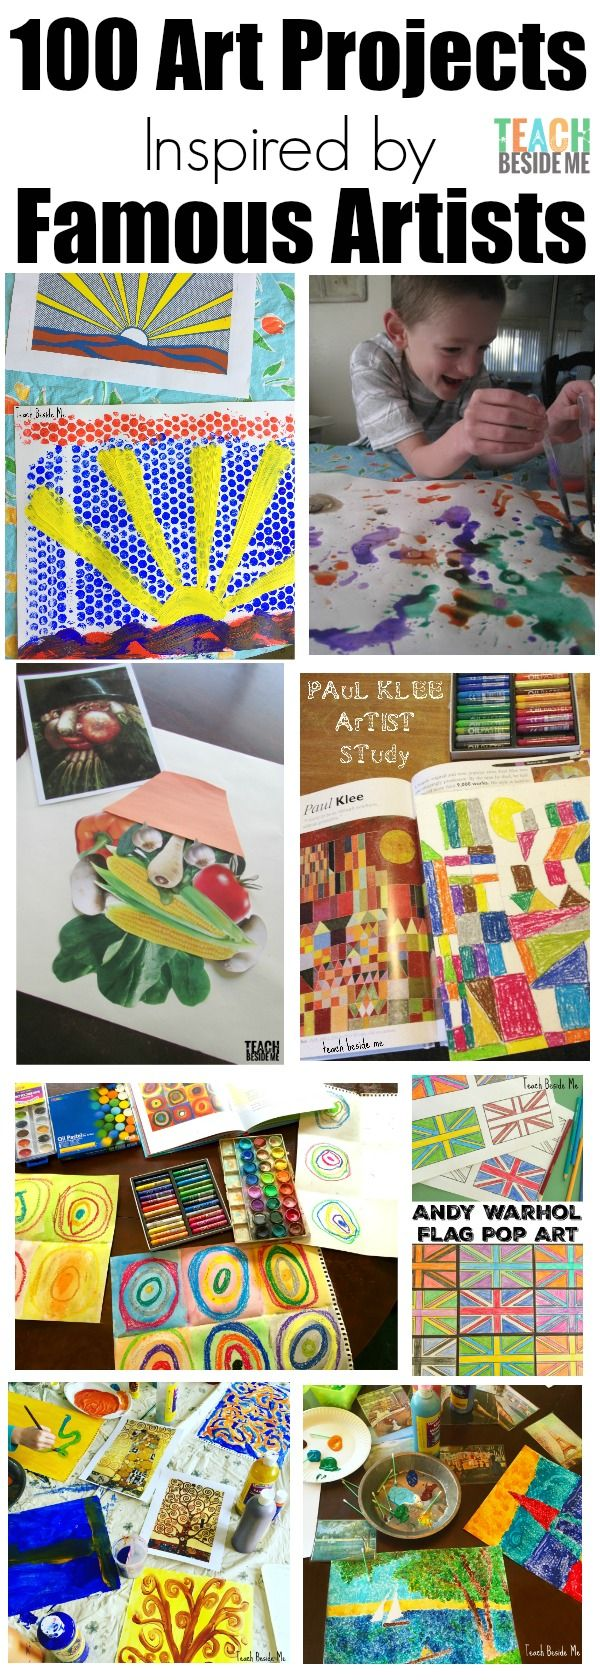 100 Fine Art Projects Inspired by Famous Artists #fineart #artlessons #artiststudy via @karyntripp